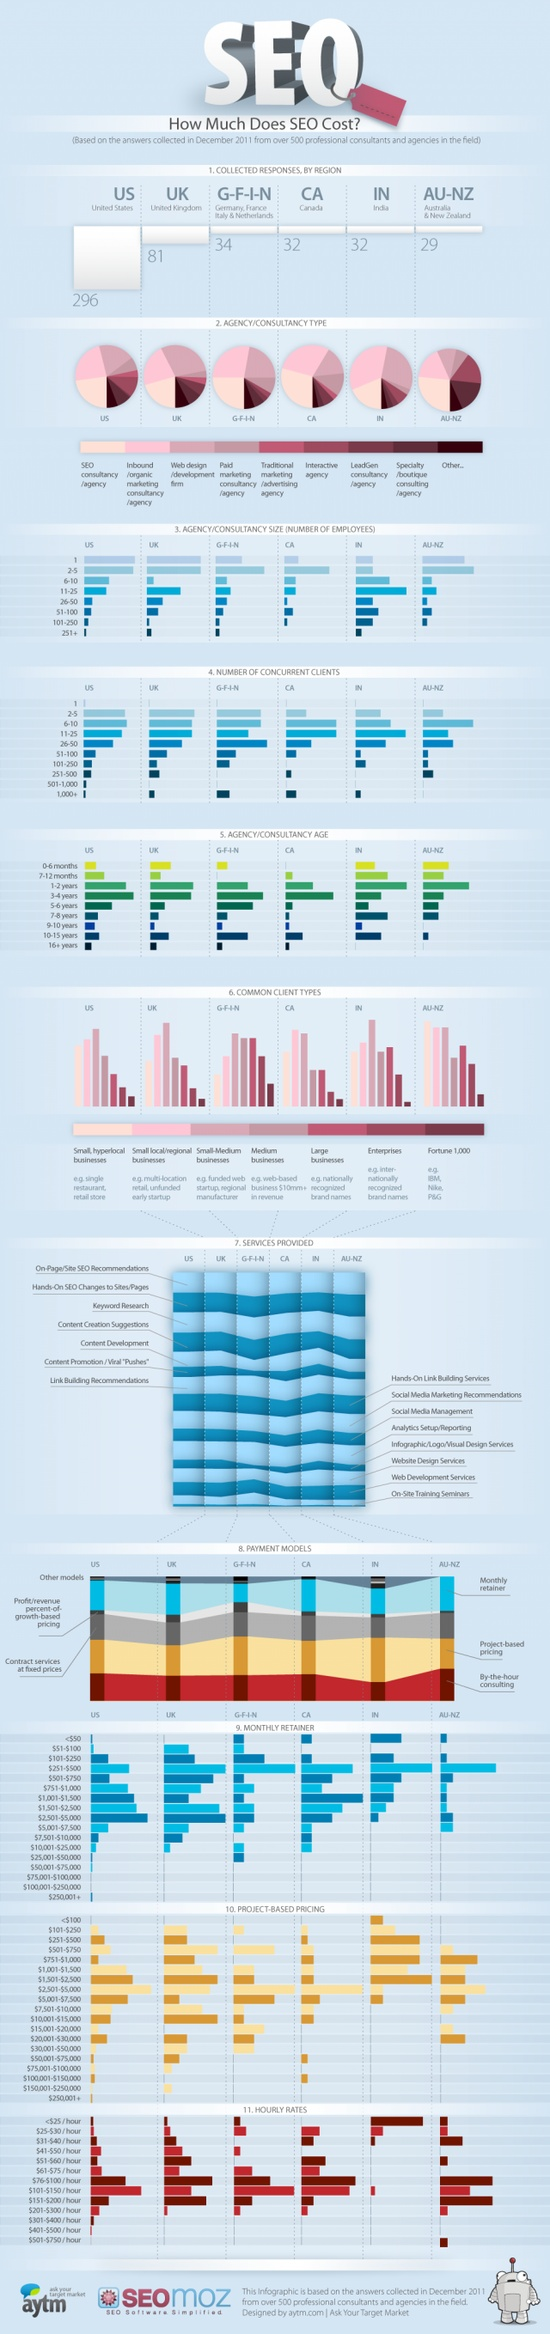 how much does seo cost infographic